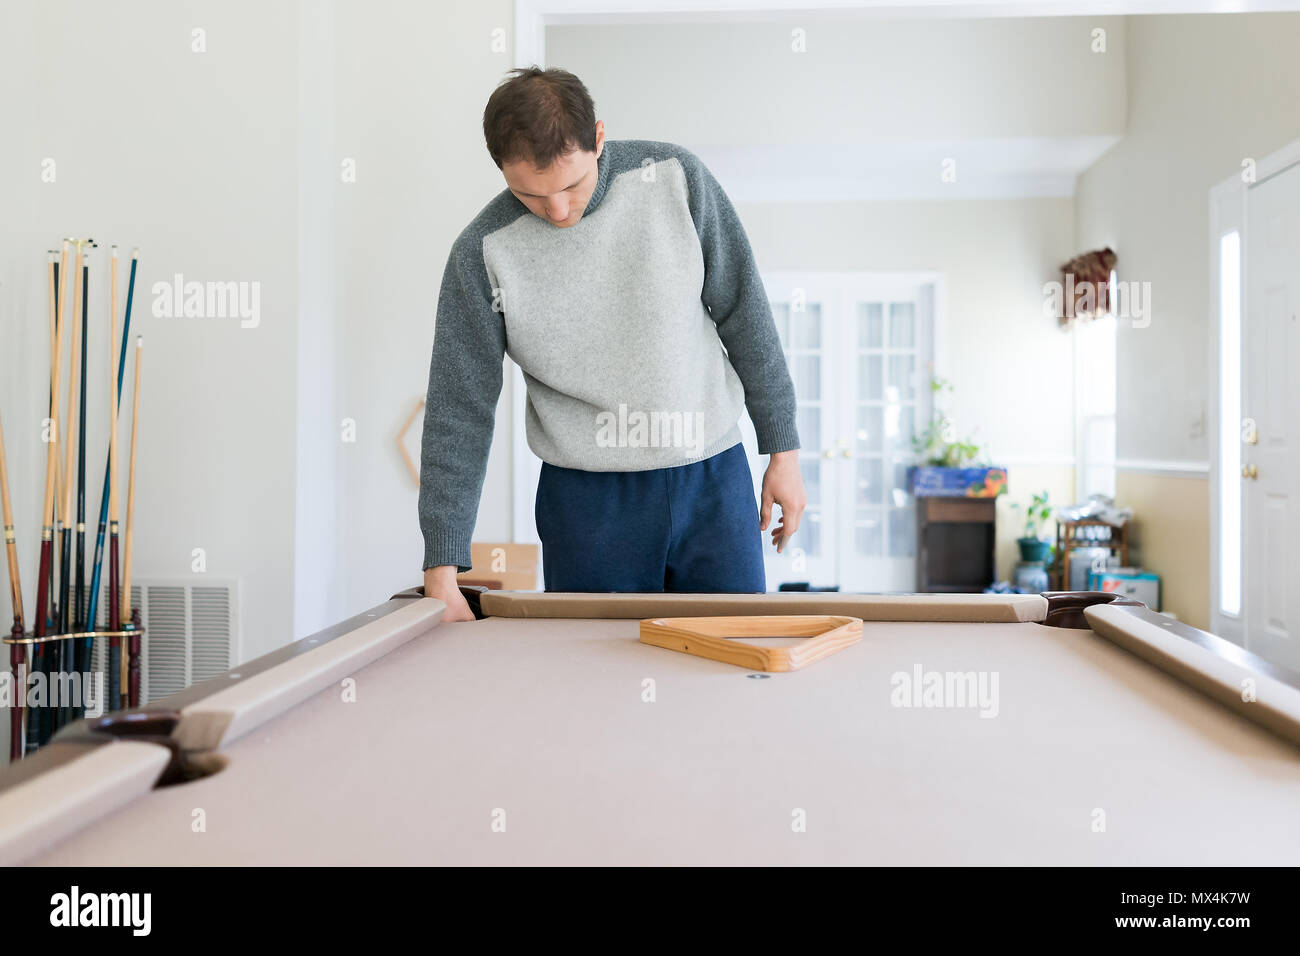 Interior inside house home with billiard pool table in living room ...